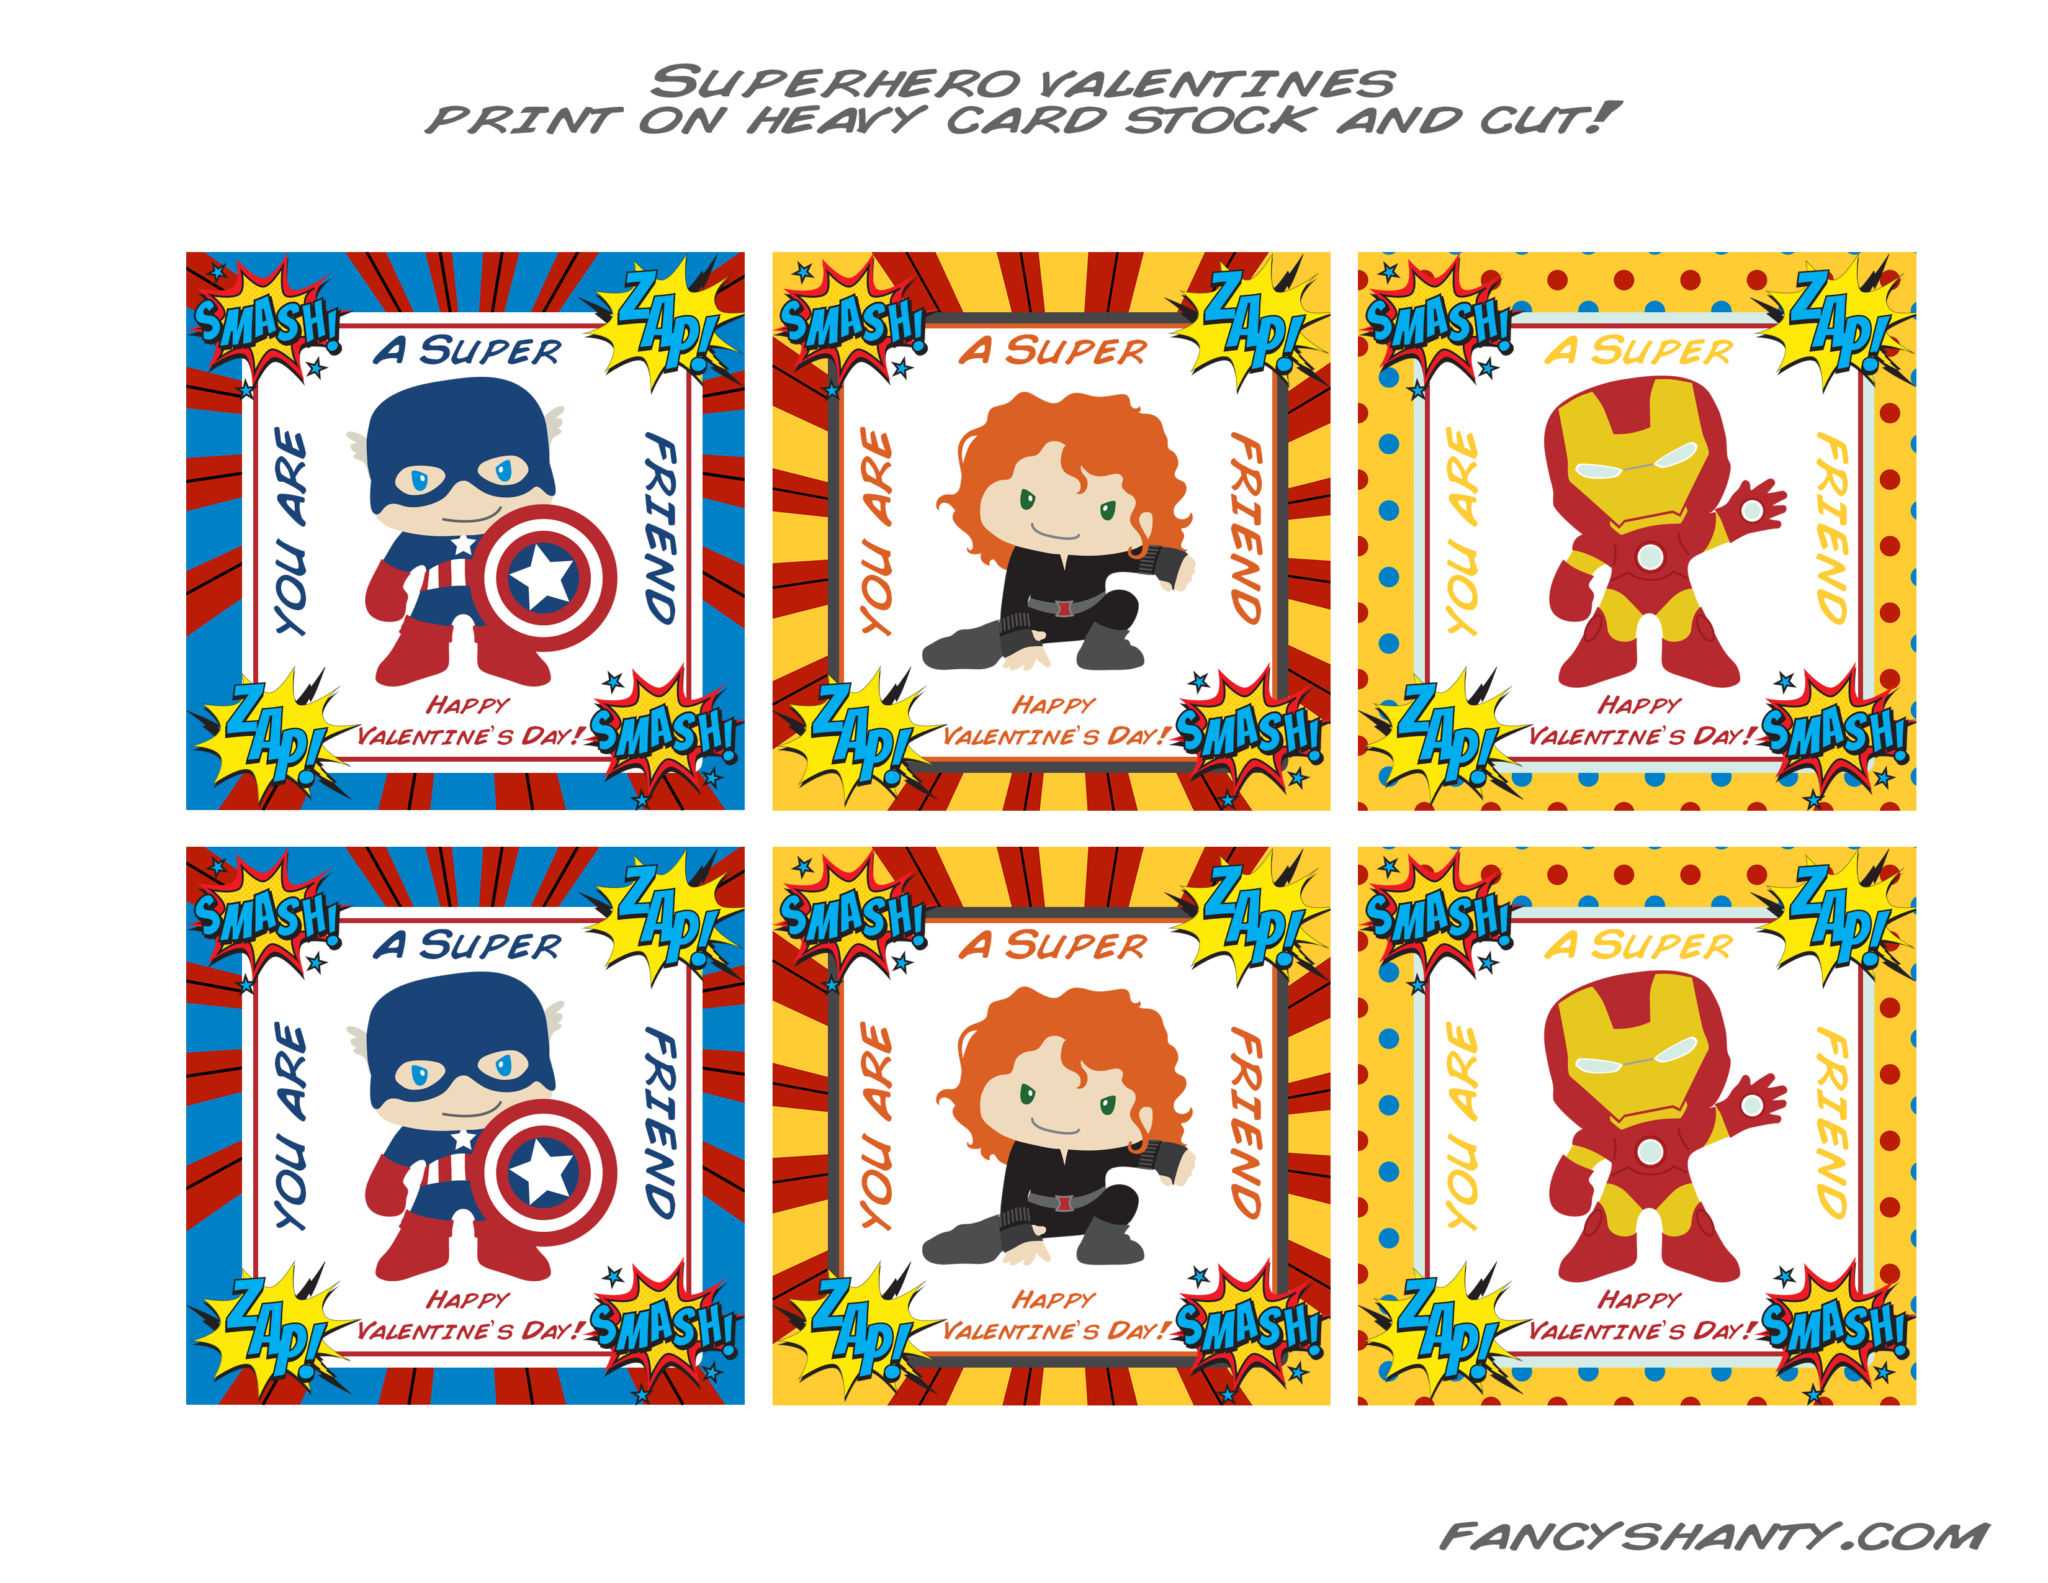 Superhero Valentine Cards